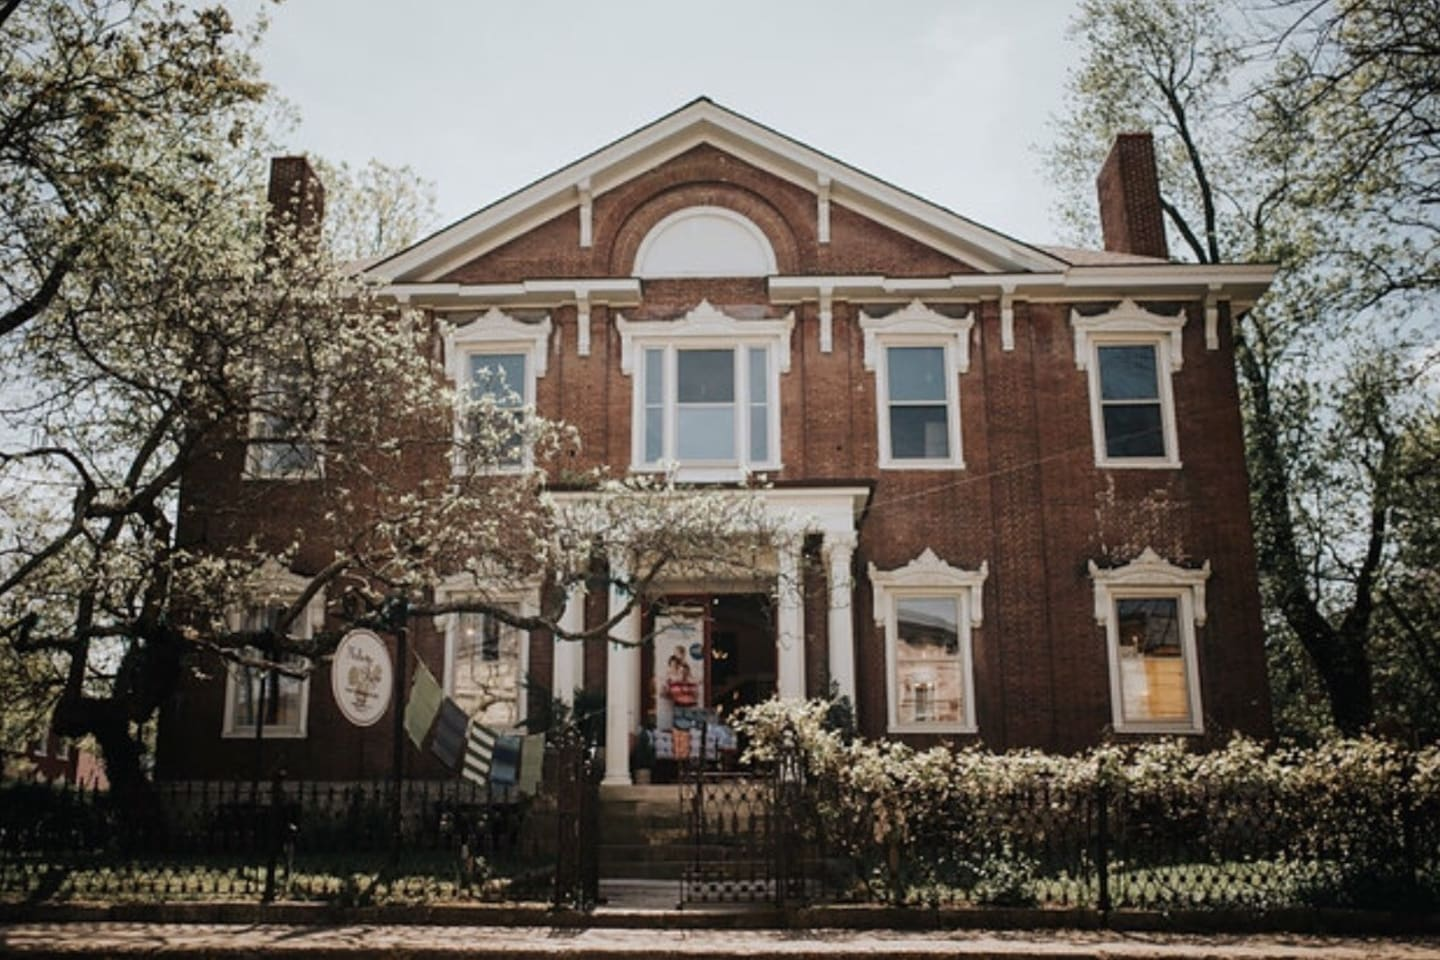 The Matthew Kennedy house was built in 1818 by Kennedy for his residence and office. He was the first known architect in Lexington.